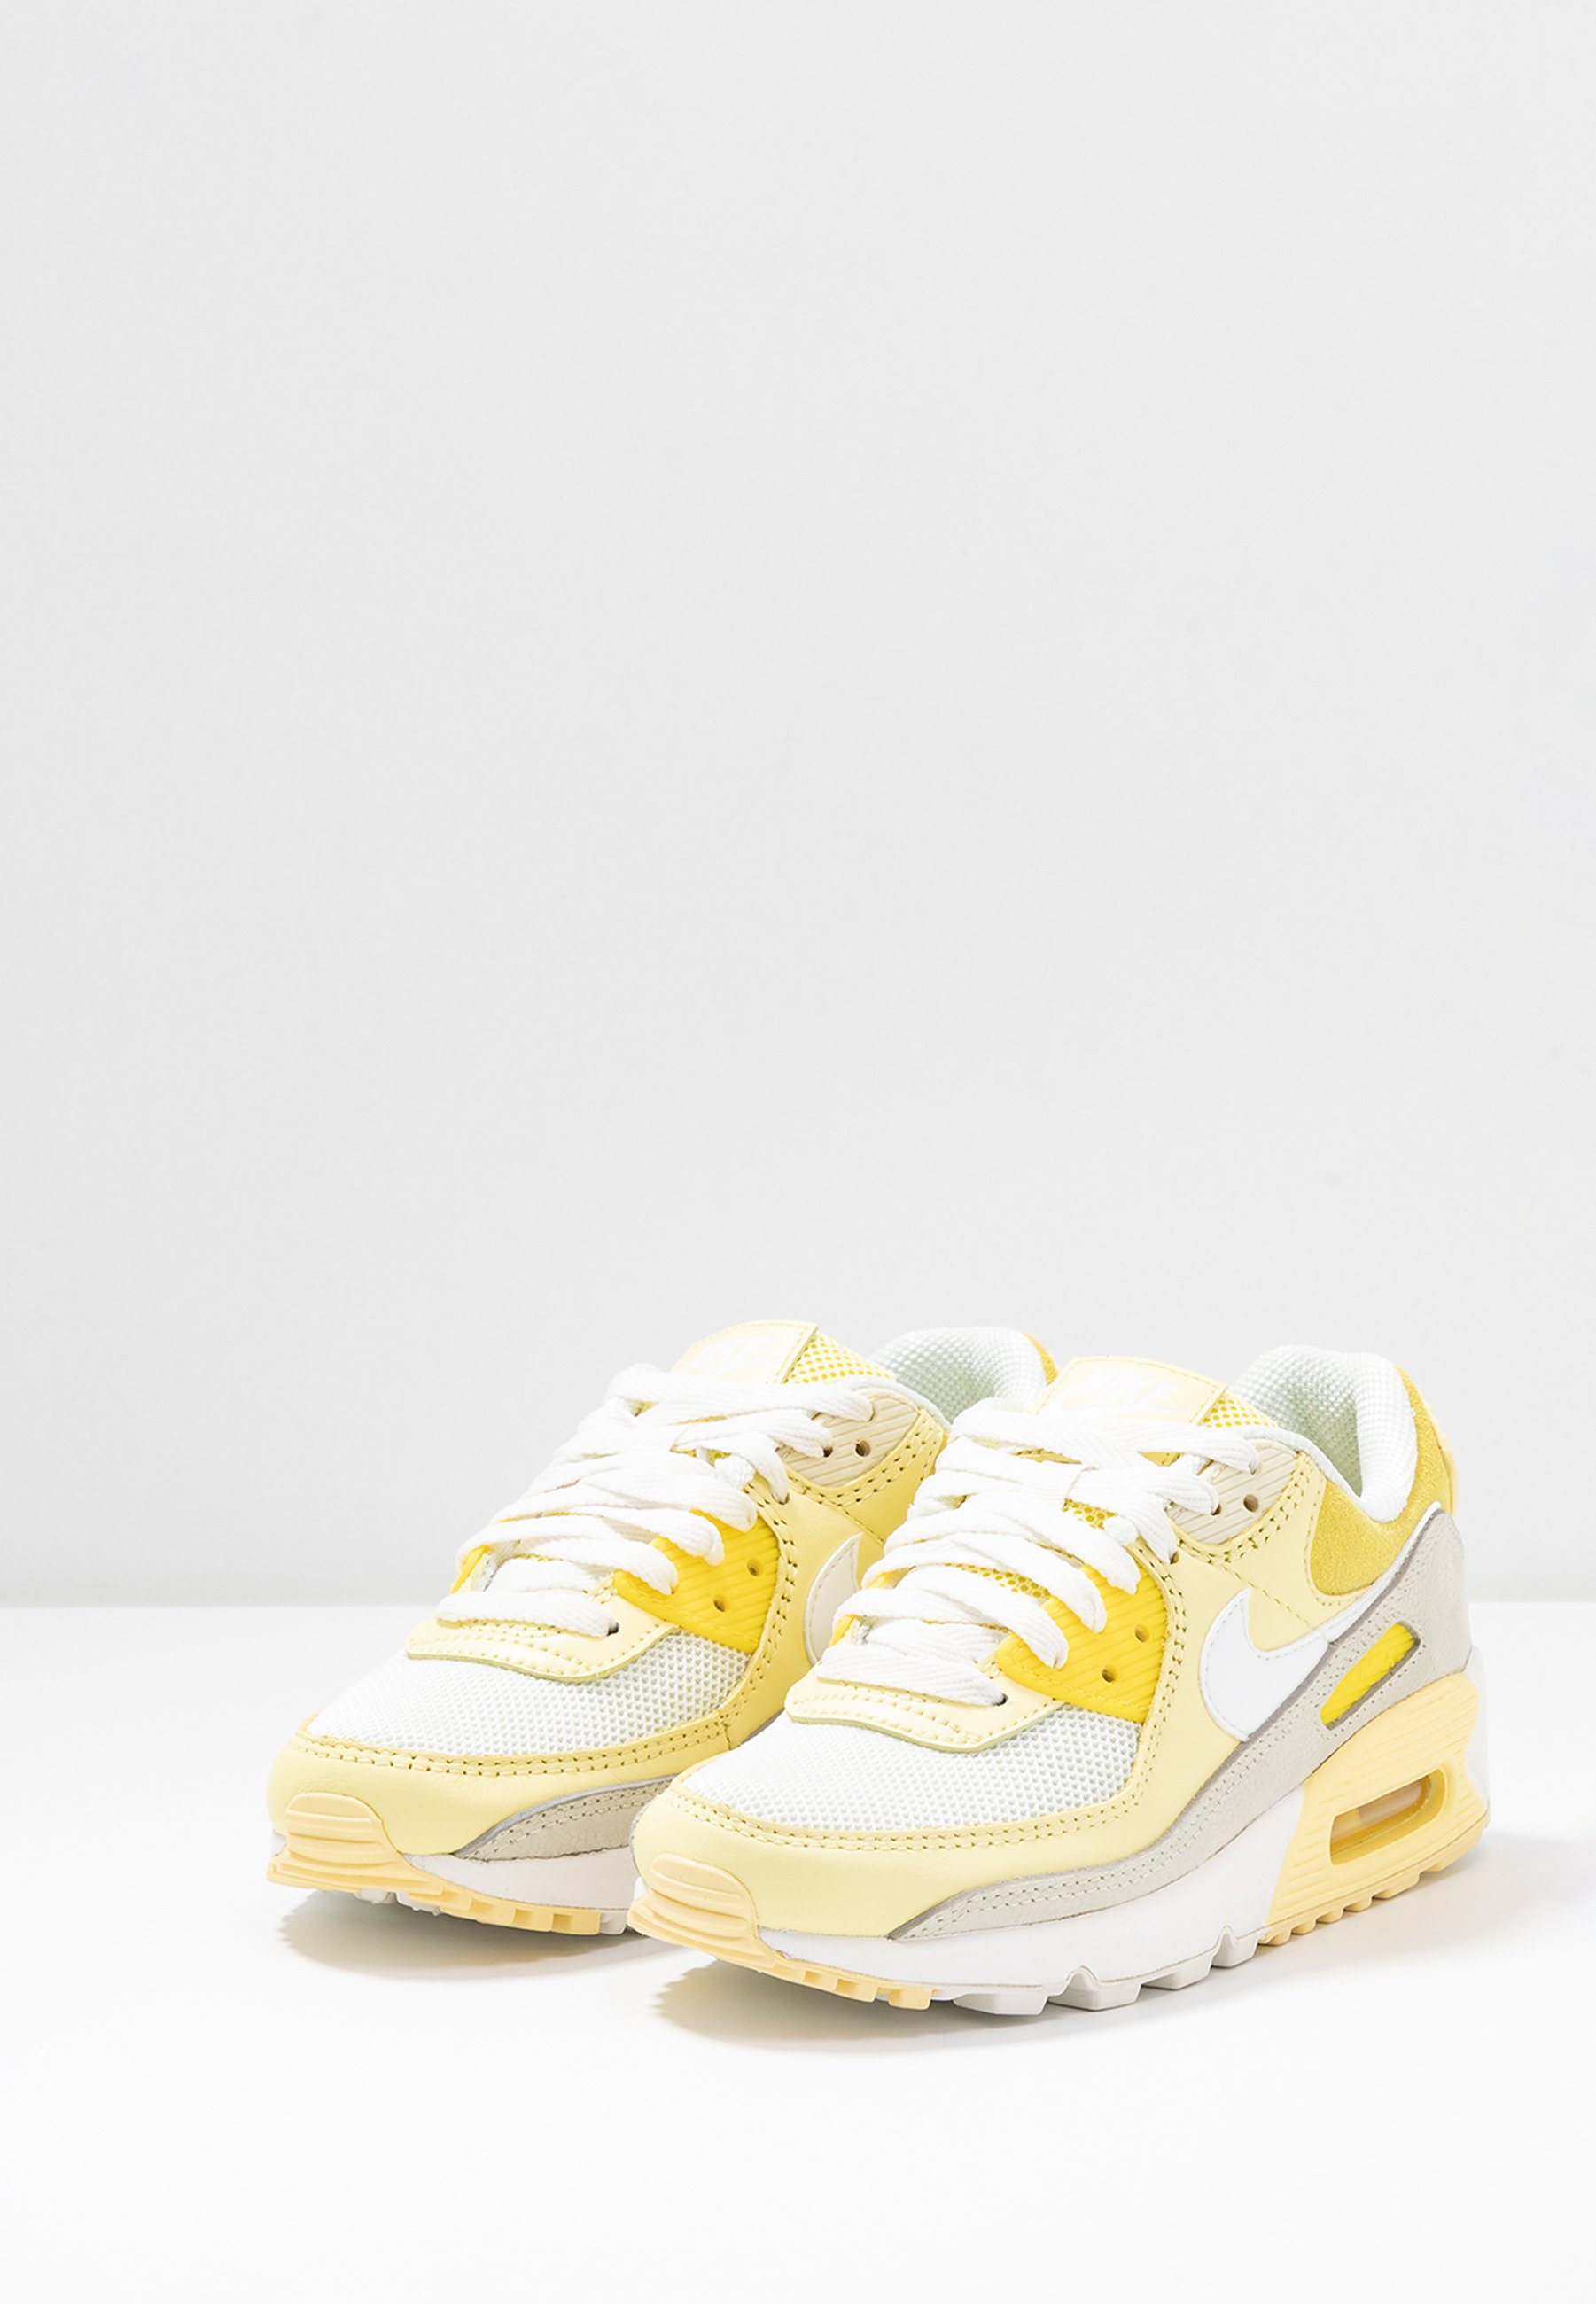 Chaussures Nike Sportswear AIR MAX 90 PREMIUM Baskets